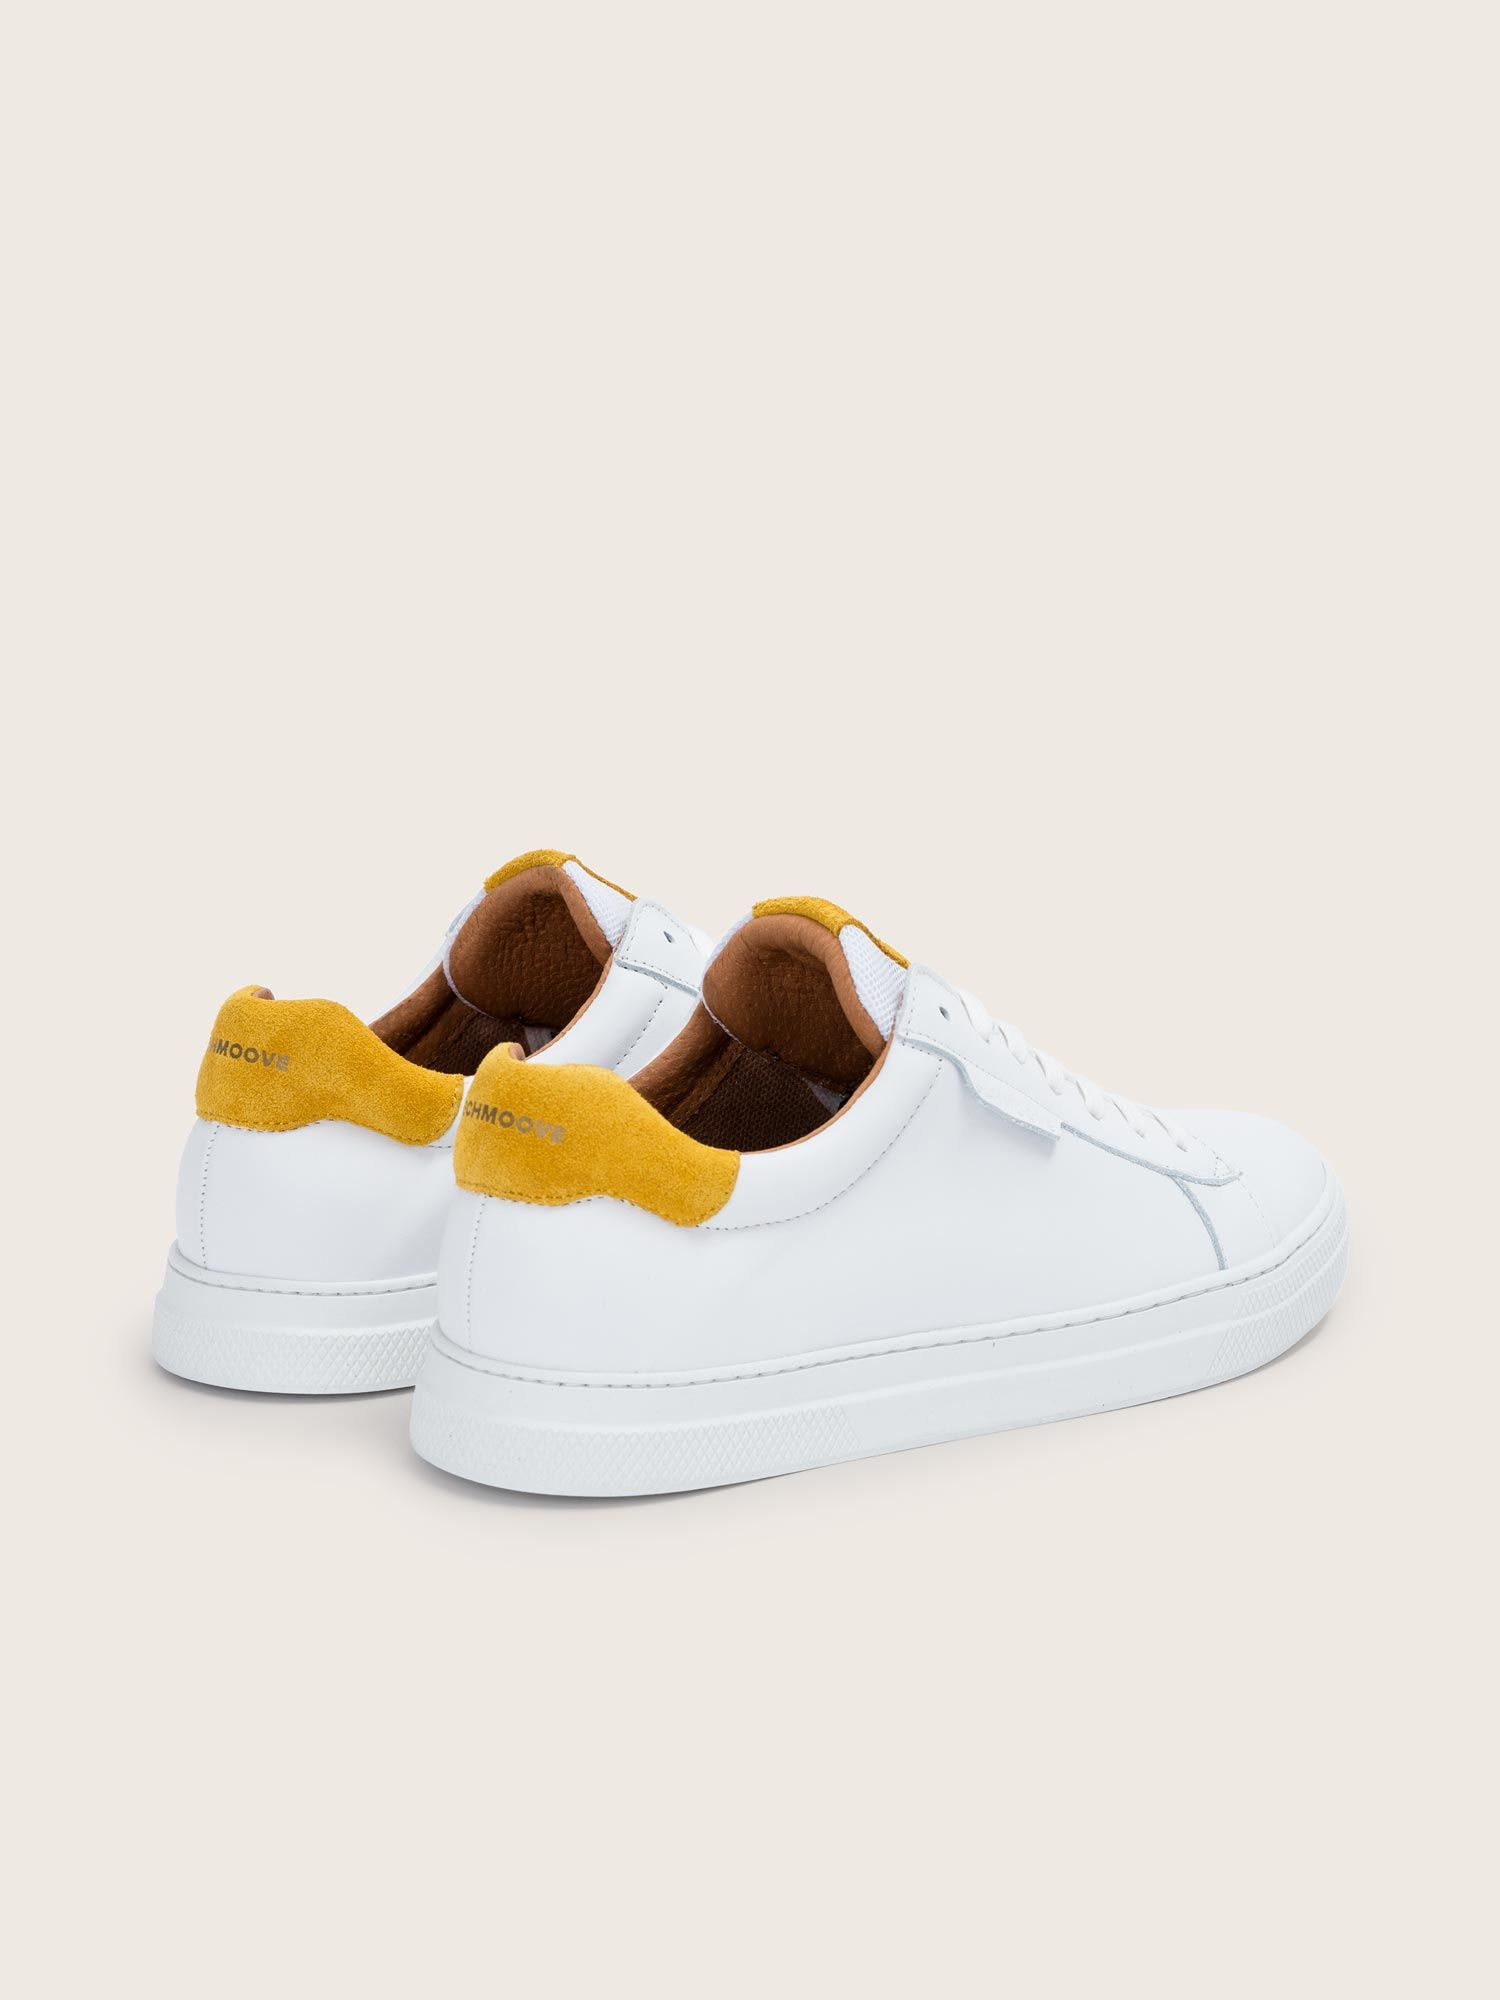 schmoove.fr Spark Clay - Nappa/Suede - White/Safran